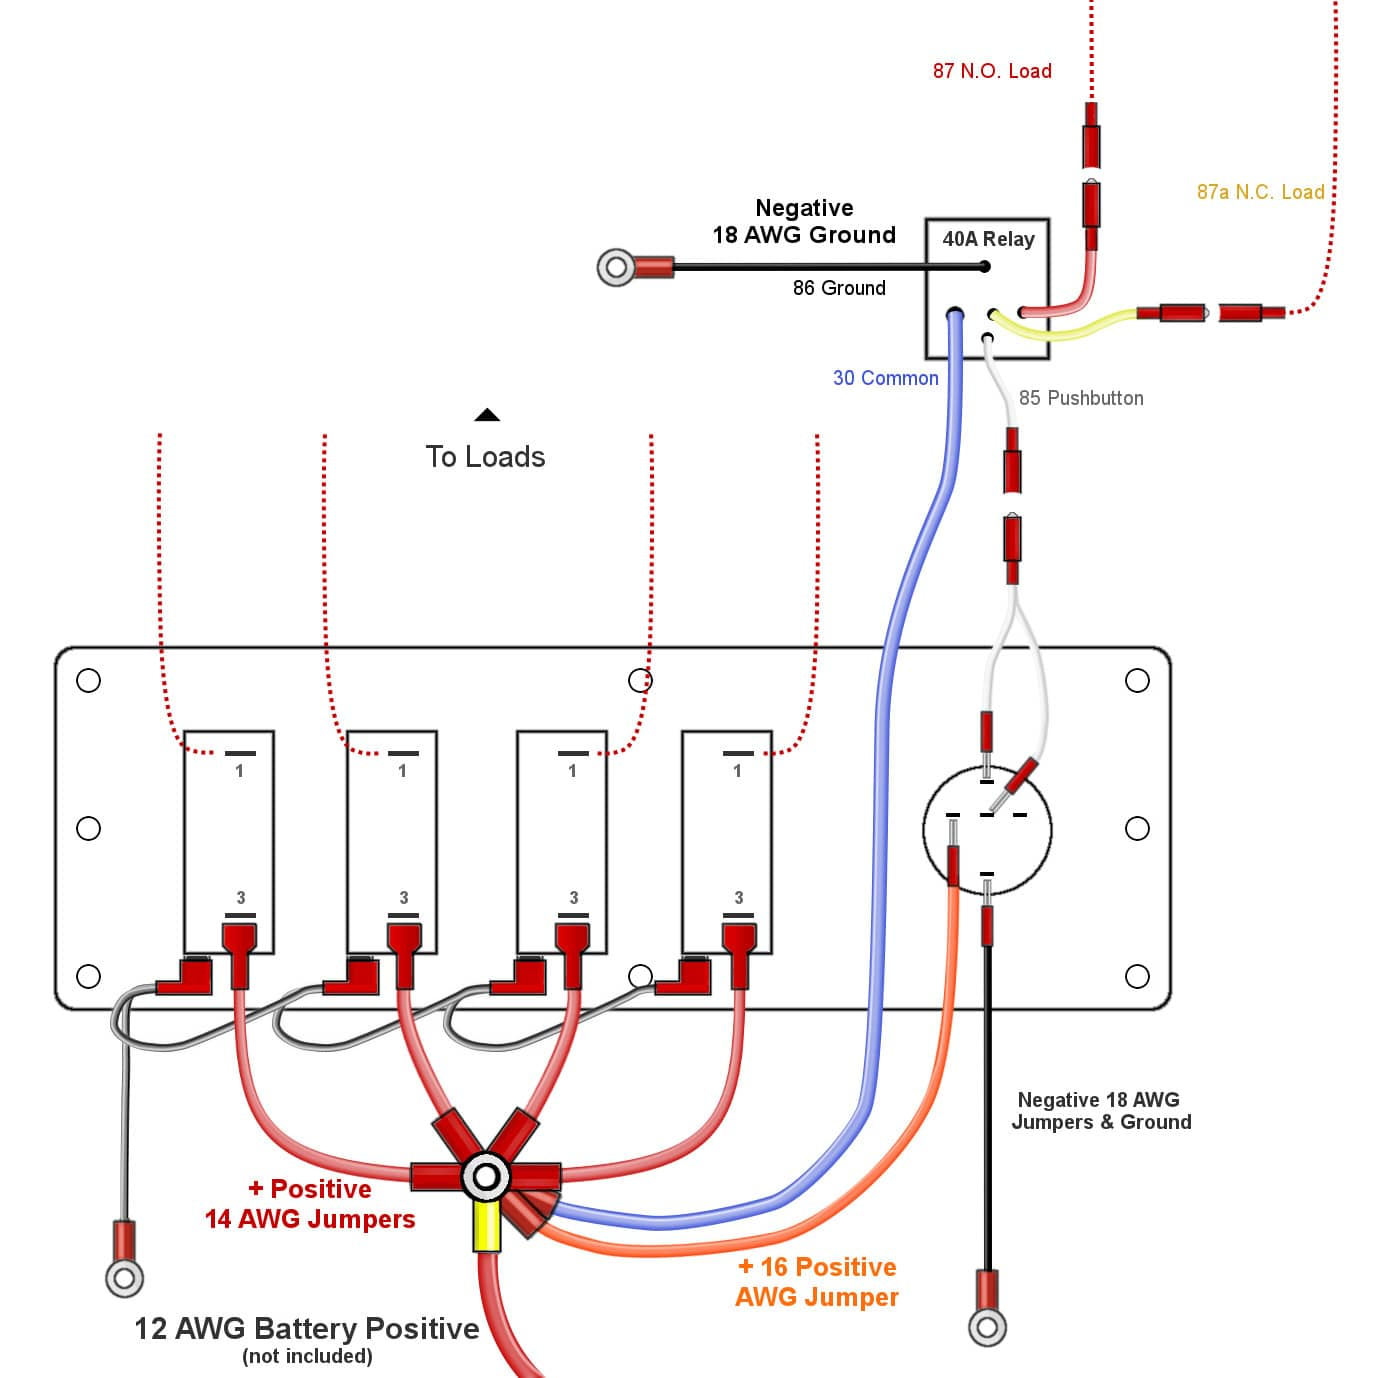 Push On Ignition Switch Wiring Diagram | Wiring Diagram Wiring Diagram Push On Switch on switch circuit diagram, switch lights, network switch diagram, relay switch diagram, wall switch diagram, switch starter diagram, 3-way switch diagram, switch battery diagram, electrical outlets diagram, switch socket diagram, rocker switch diagram, switch outlets diagram,